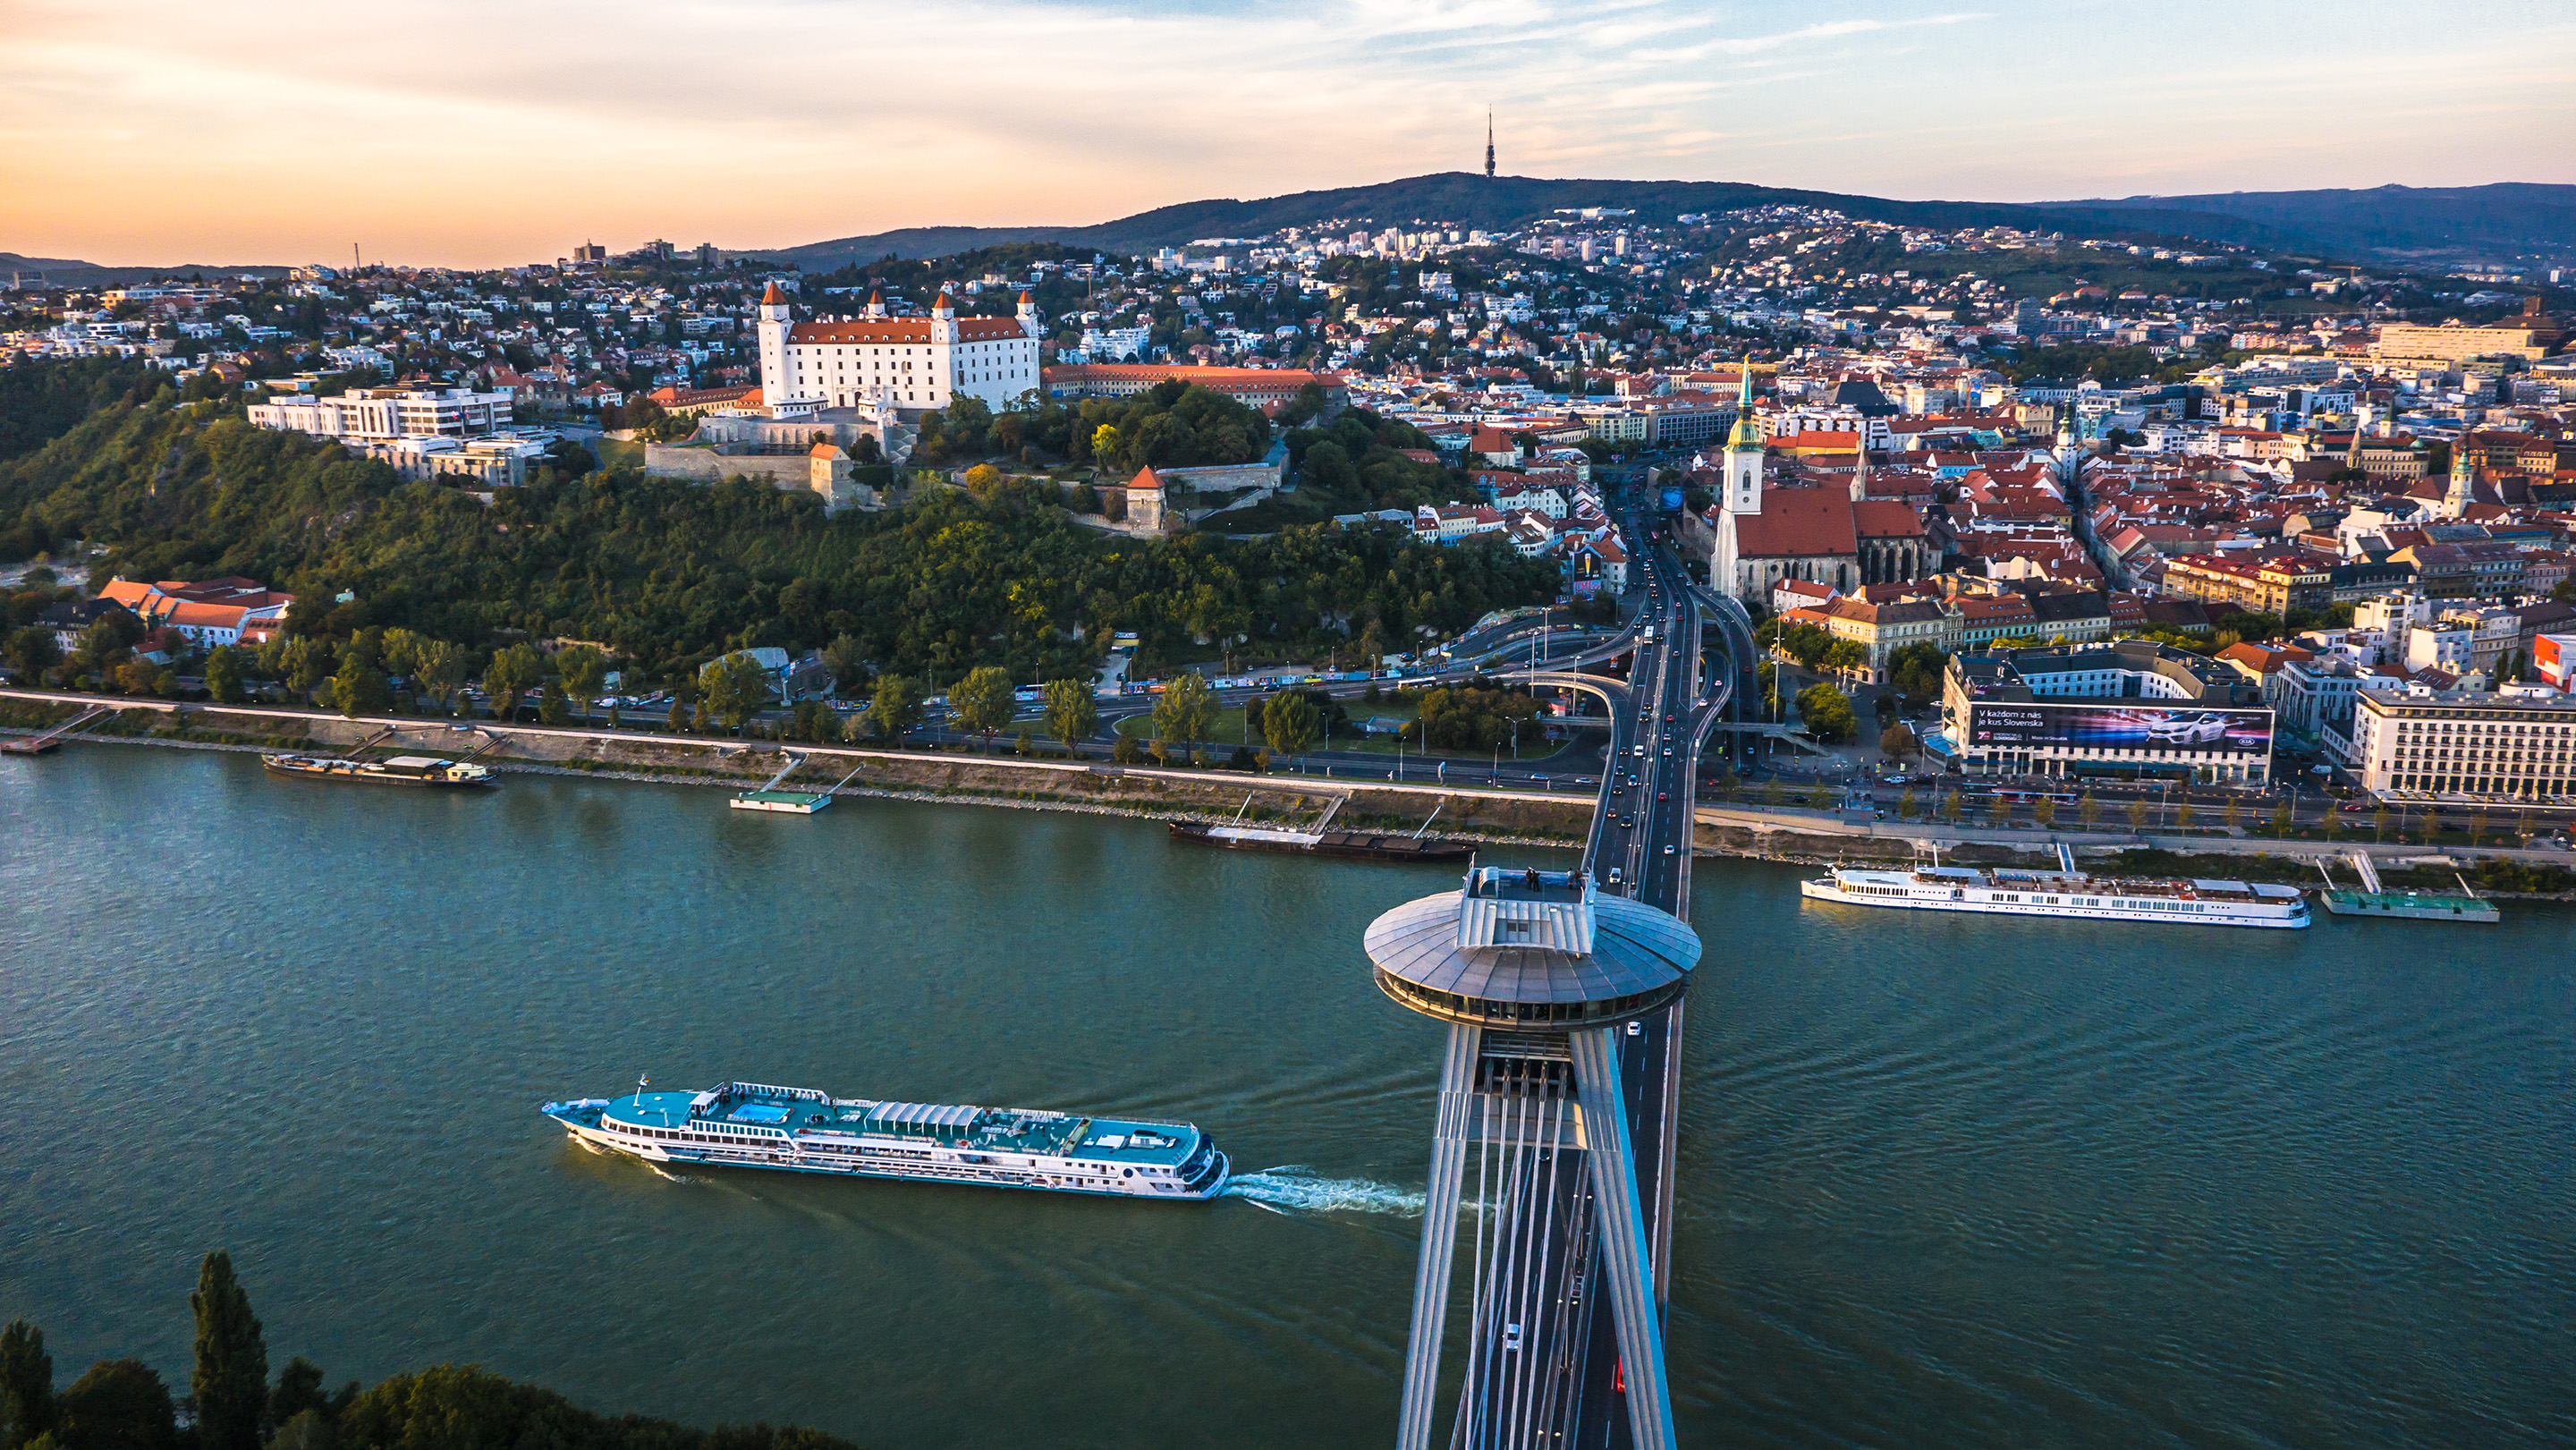 Bratislava, Towns to See in Slovak